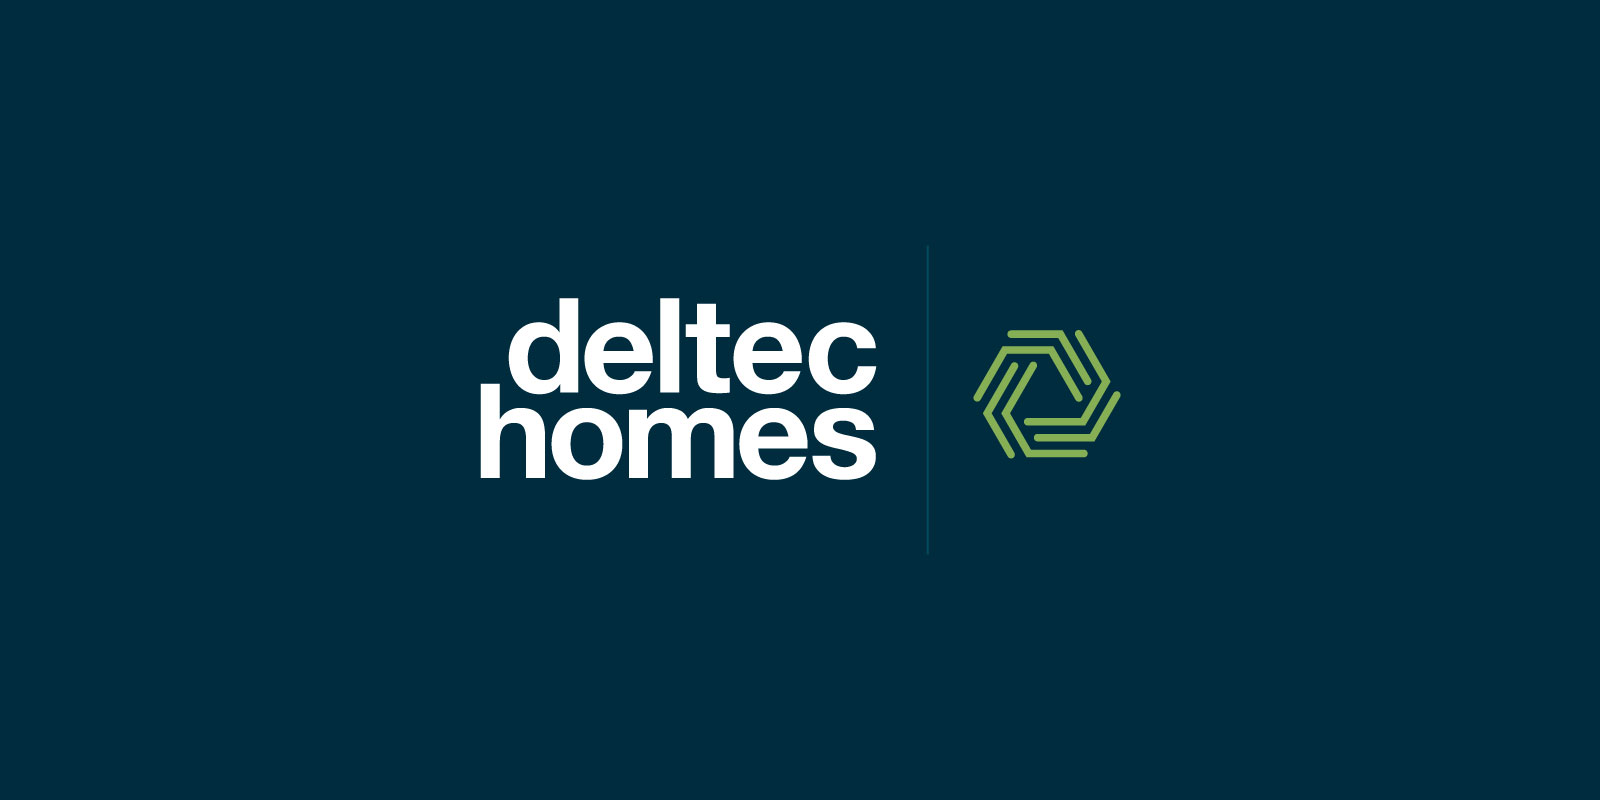 Deltec Homes logo in white and green, centered against a blue background.